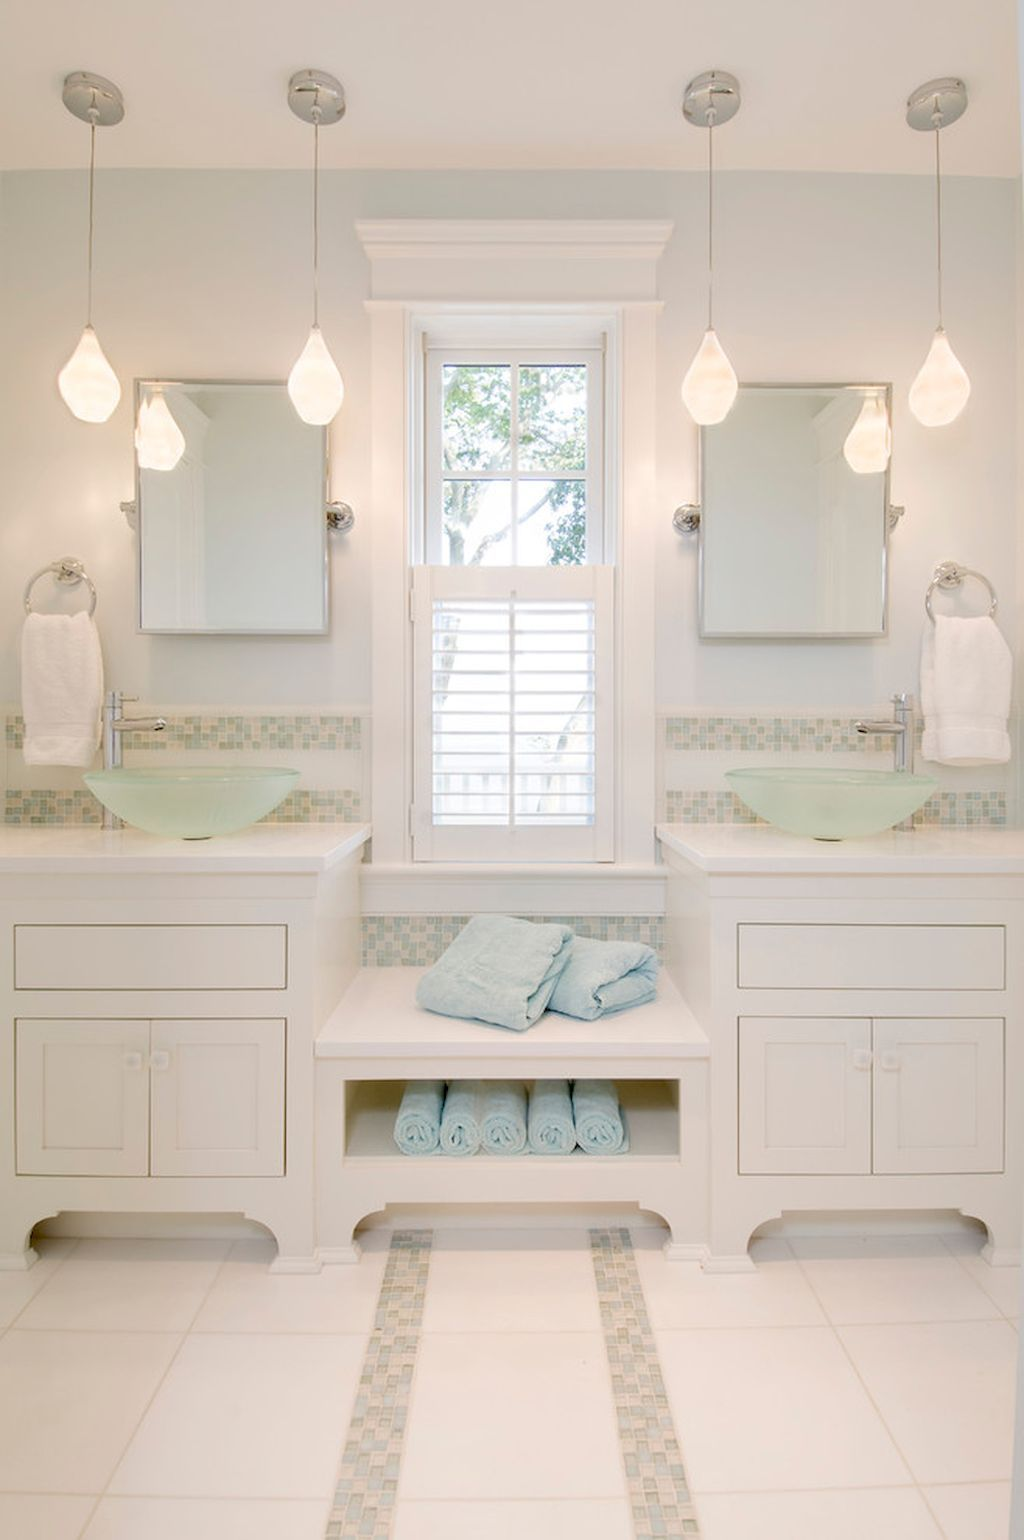 65 Coastal Beach House Bathroom Remodel Designs | Beach house ...